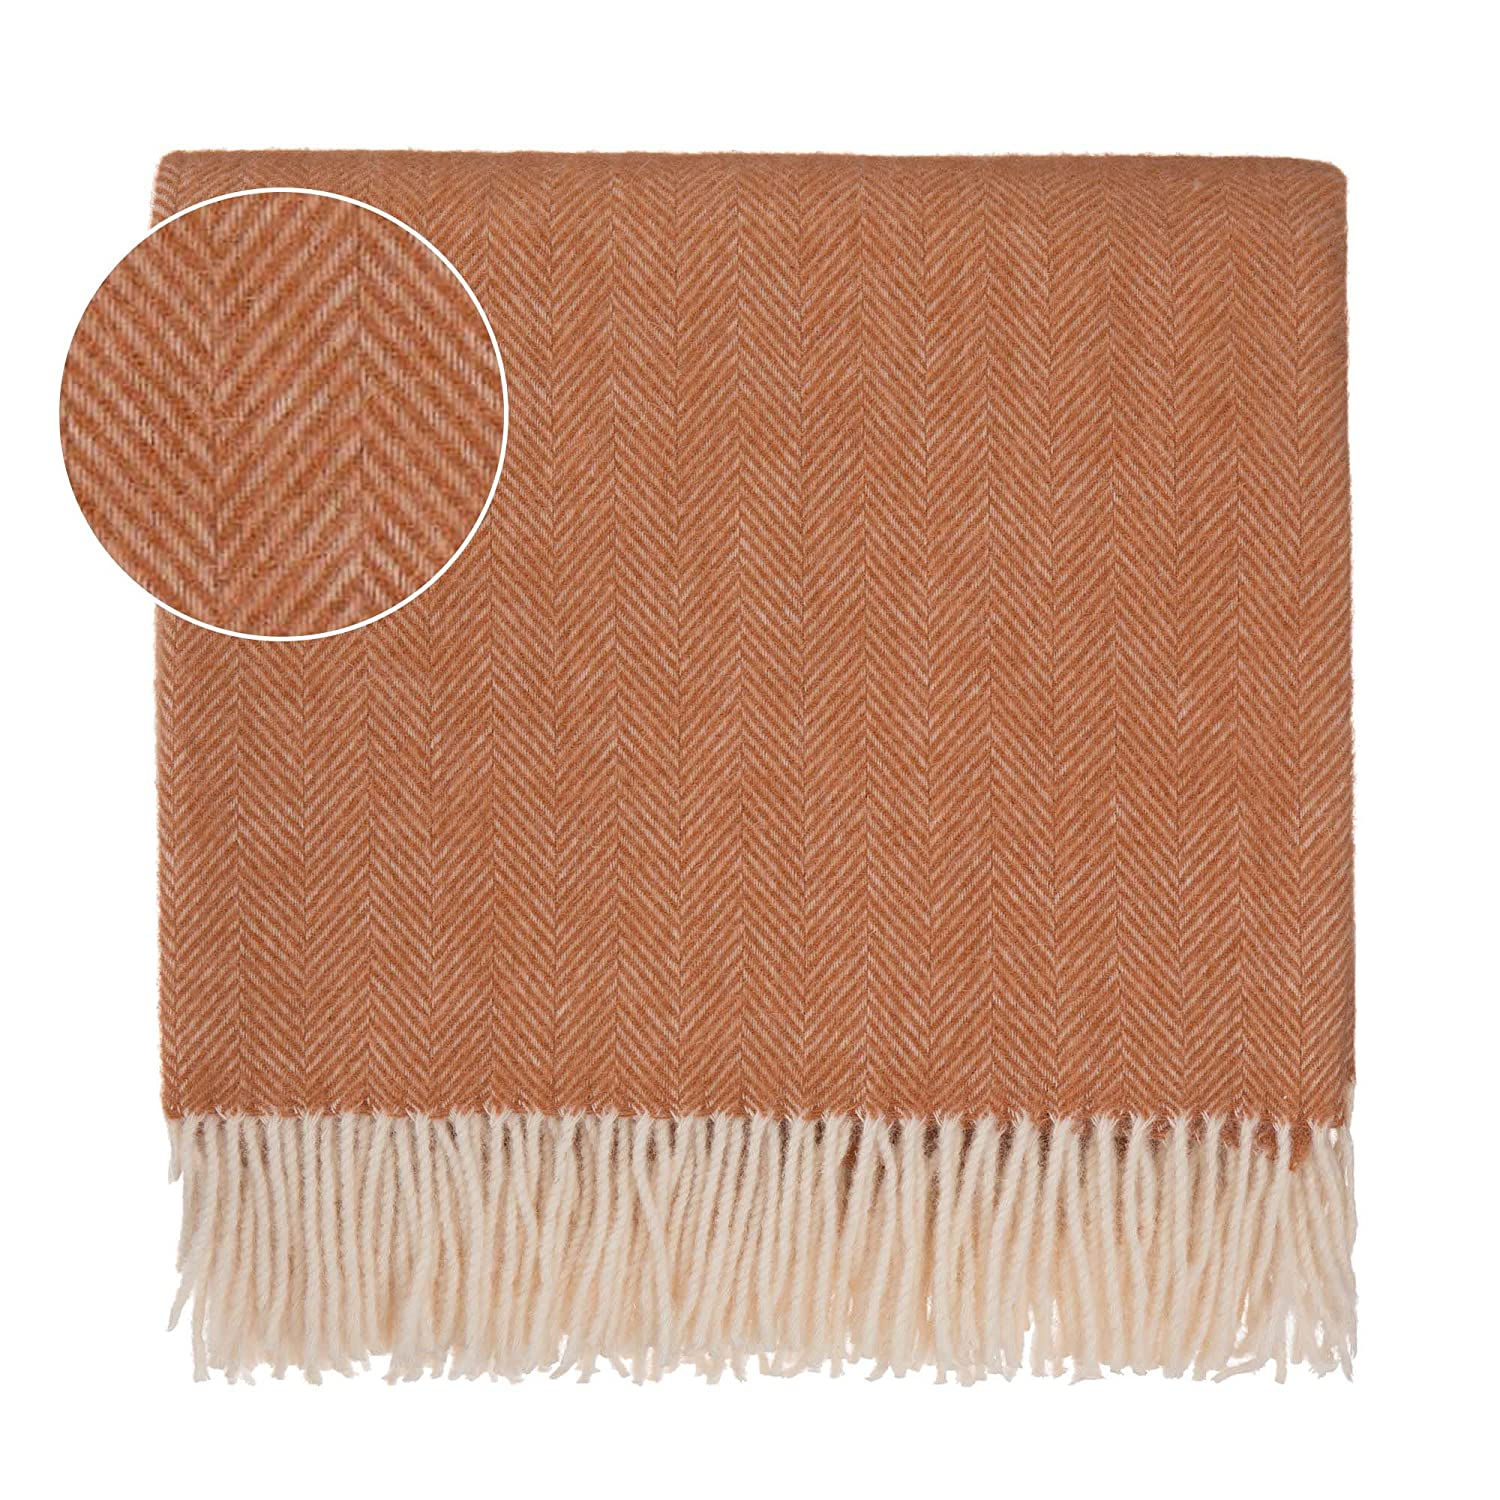 Phenomenal Urbanara 50 Alpaca Wool 50 Merino Wool Throw Corcovado 51X67 Terracotta Off White With Fringe Blanket With Decorative Herringbone Weave Design Theyellowbook Wood Chair Design Ideas Theyellowbookinfo